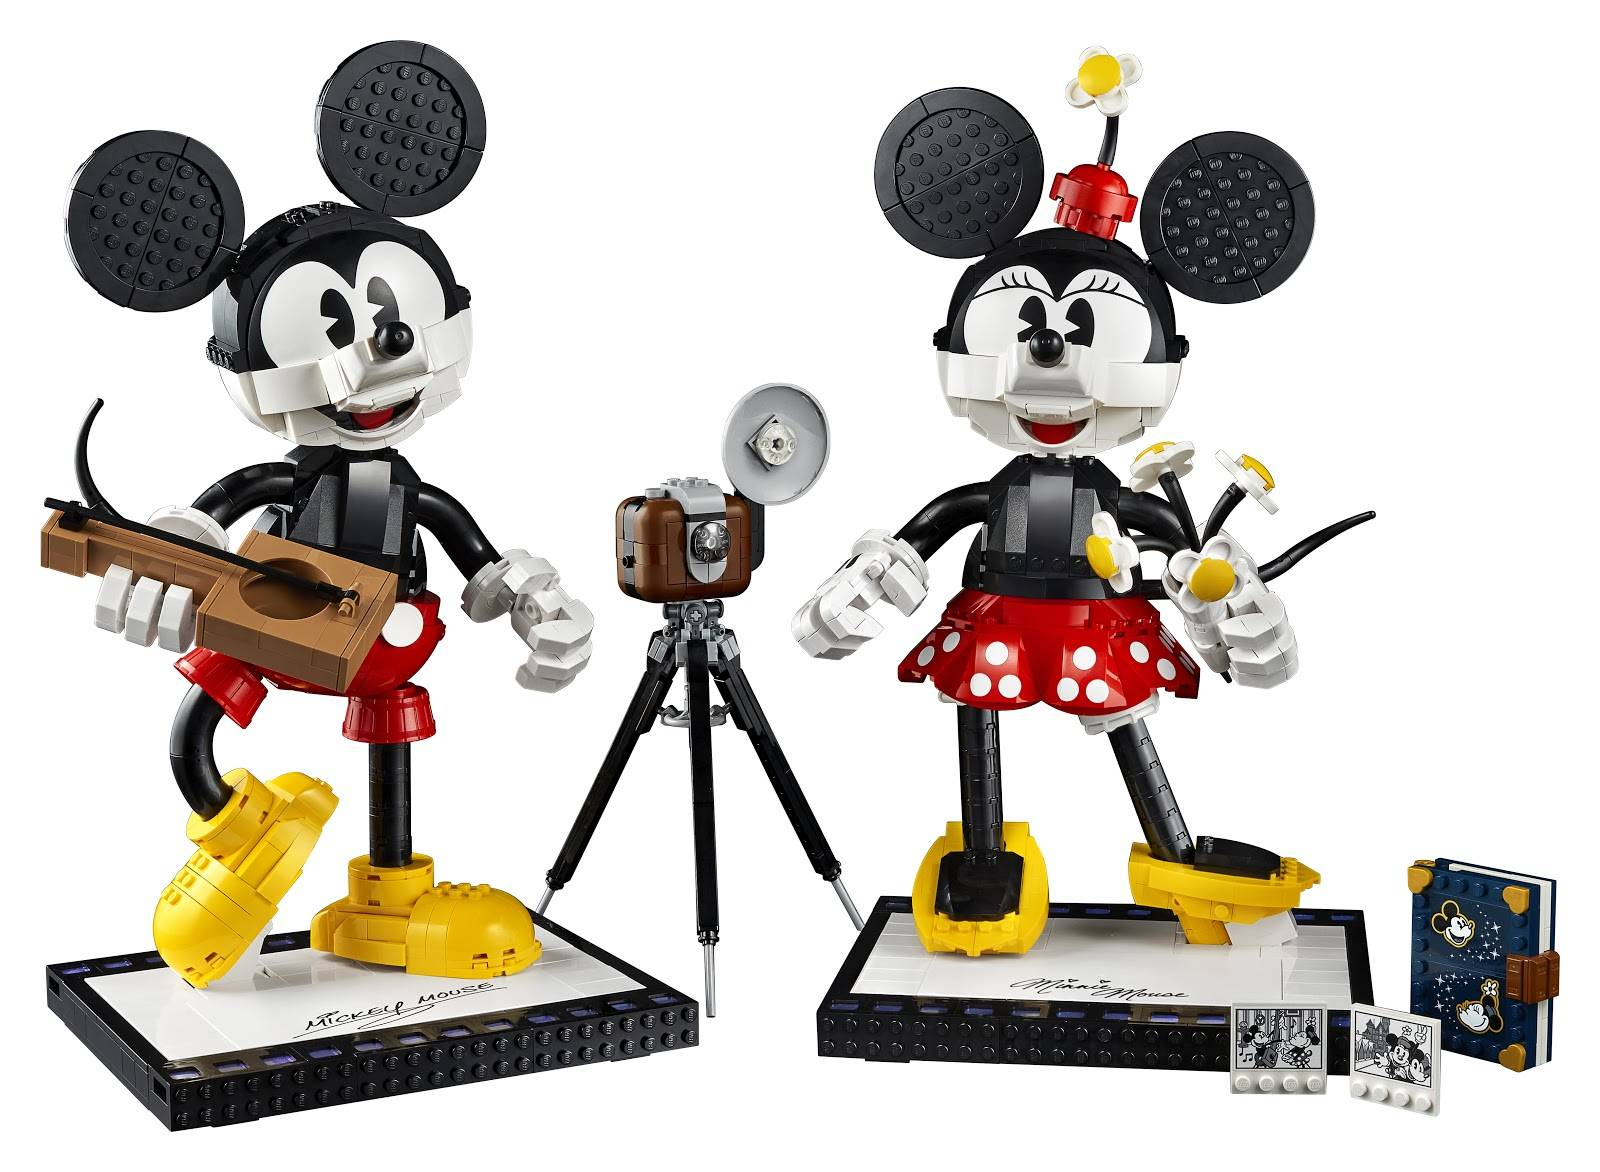 Lego Reveals Buildable Mickey Mouse Minnie Mouse Set Coming This Summer Laughingplace Com